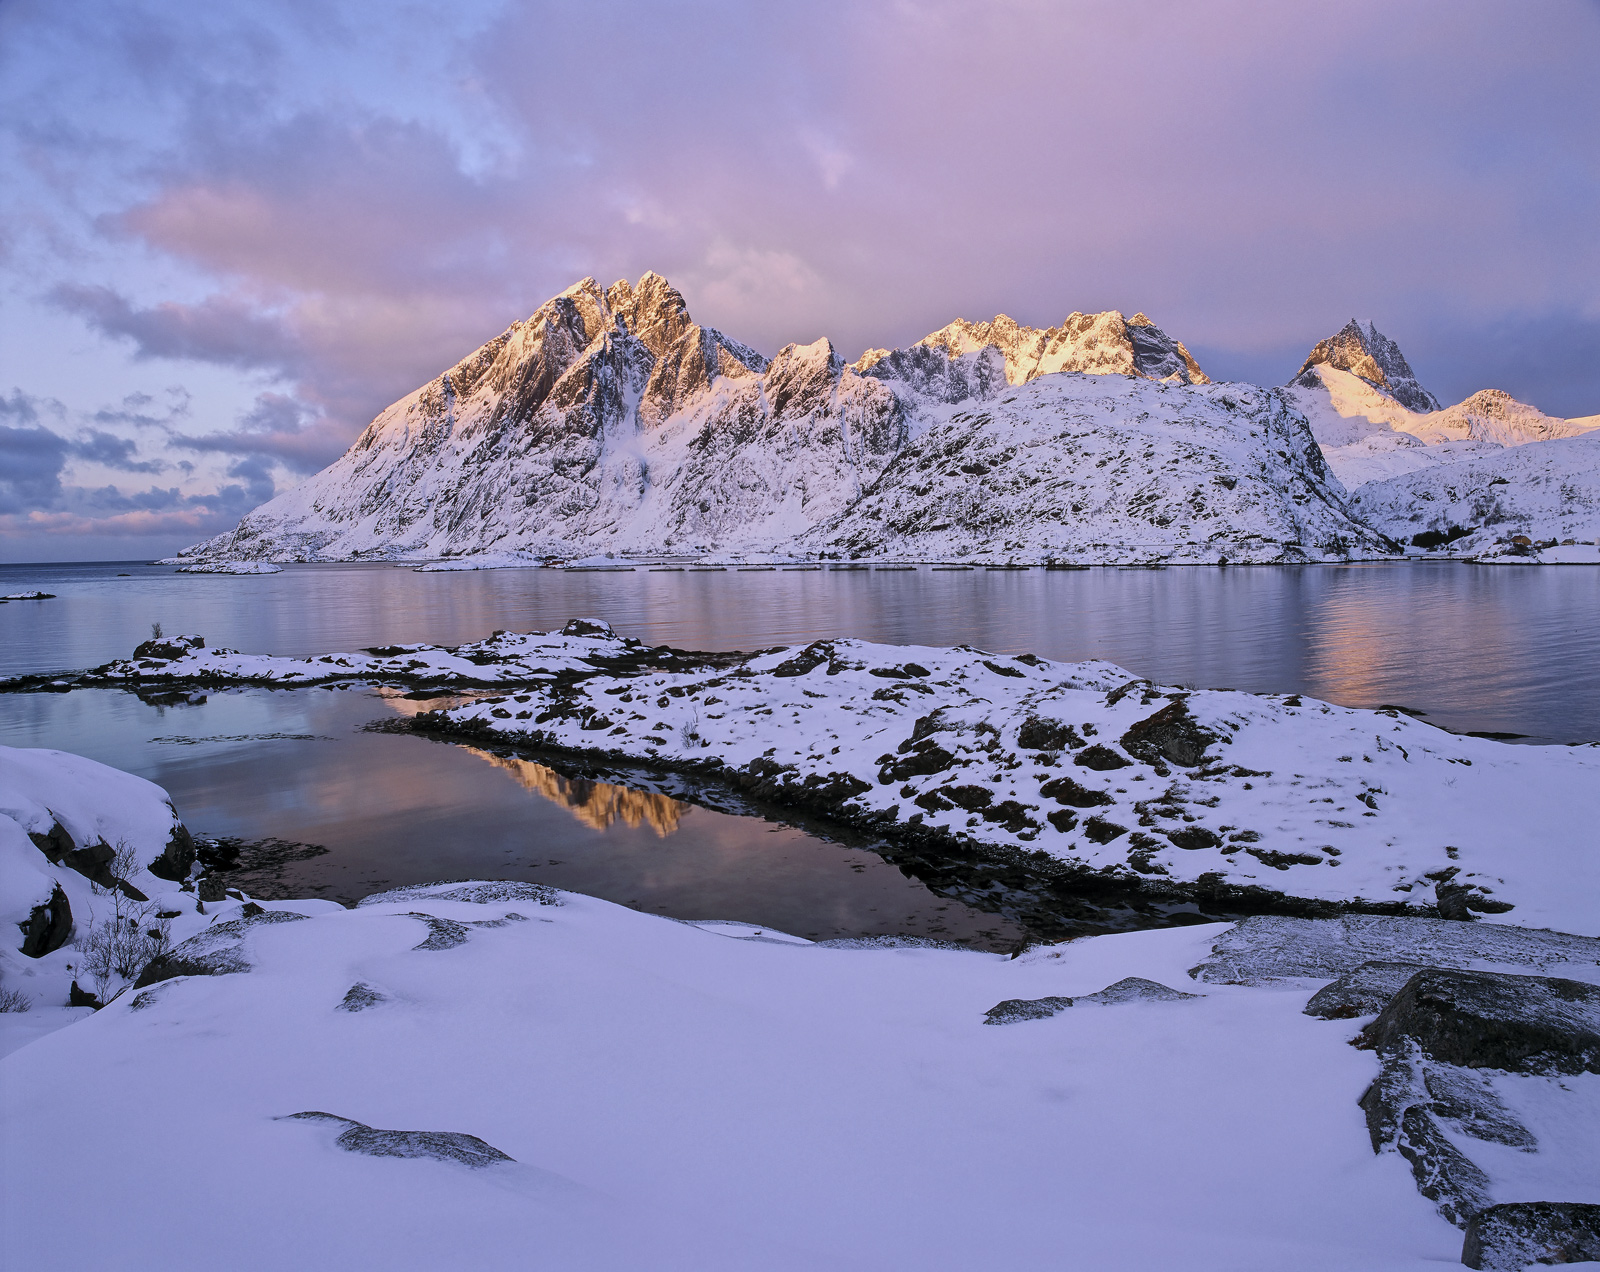 Sund Candles, Sund, Lofoten, Norway, golden, peaks, mountains, snow, burning, winter, squalls , photo